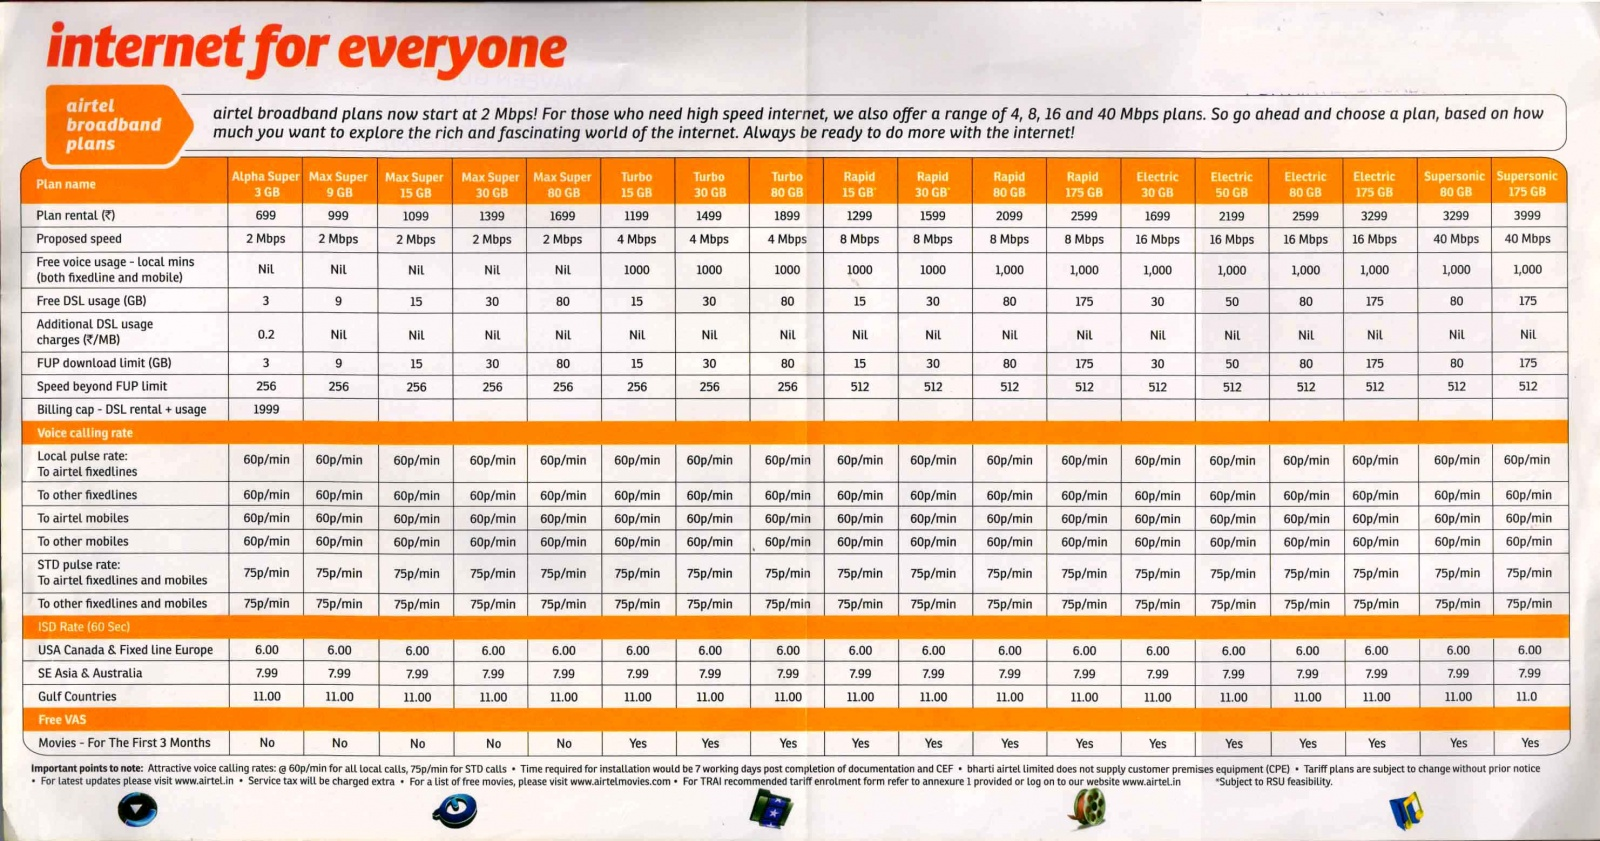 Airtel Plan Reliance Broadband Feedback Page 2 India Travel Forum